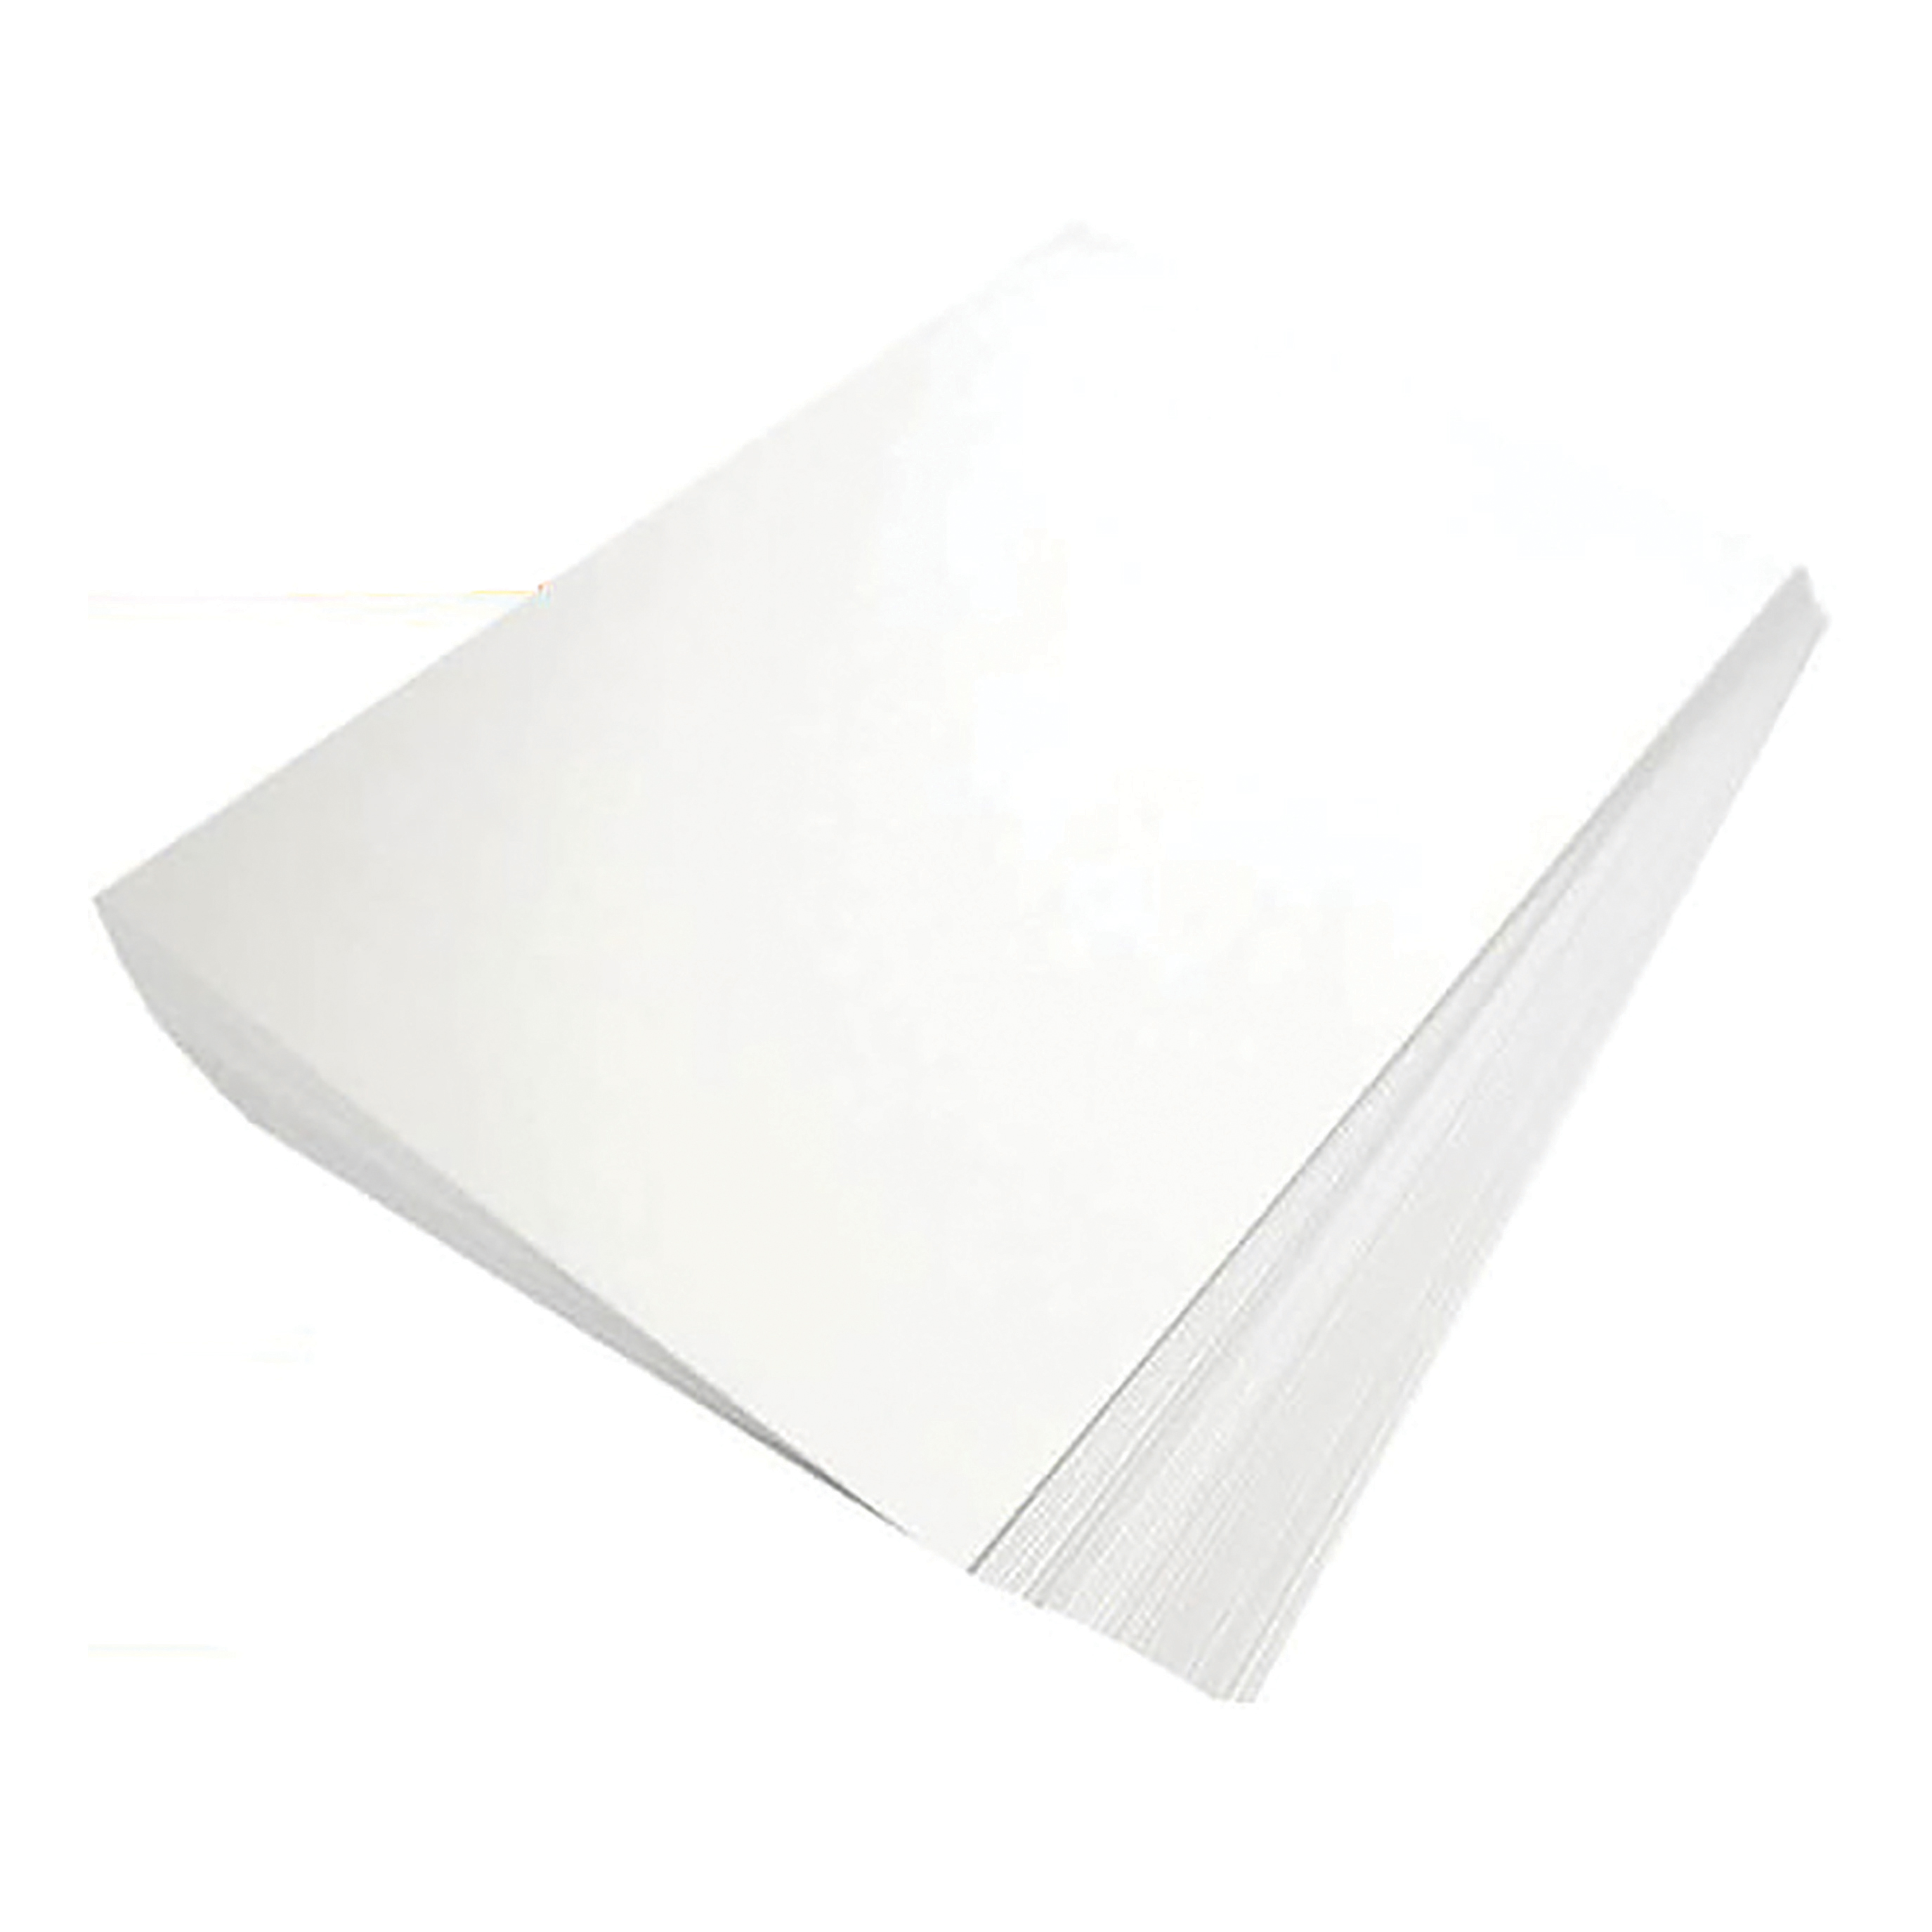 A4 5 Star Elite Premium Business Paper Wove Finish Ream-Wrapped 100gsm A4 High White 500 Sheets